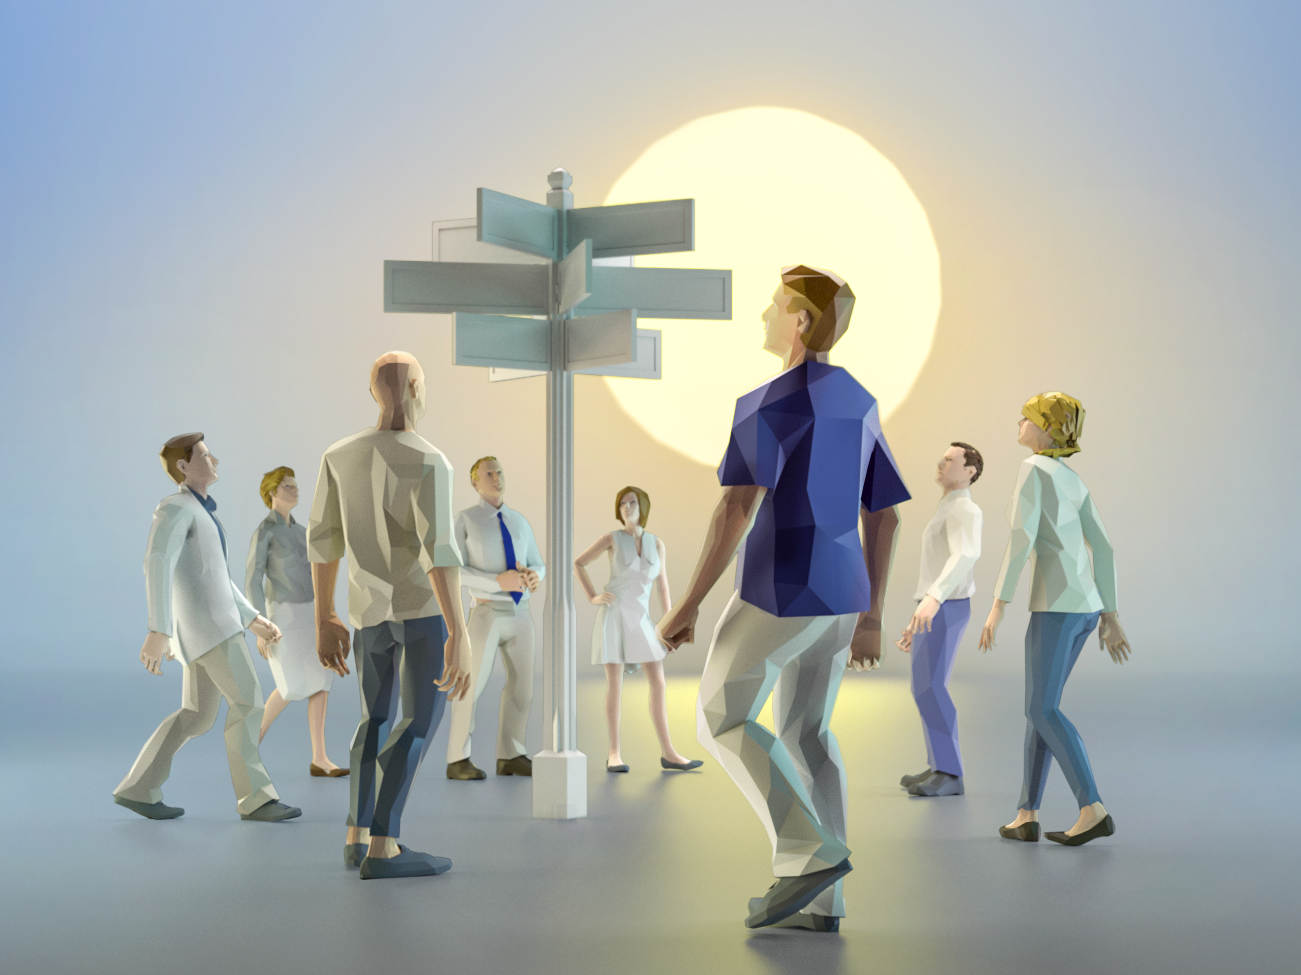 Passersby c4d light lowpoly low poly cinema4d